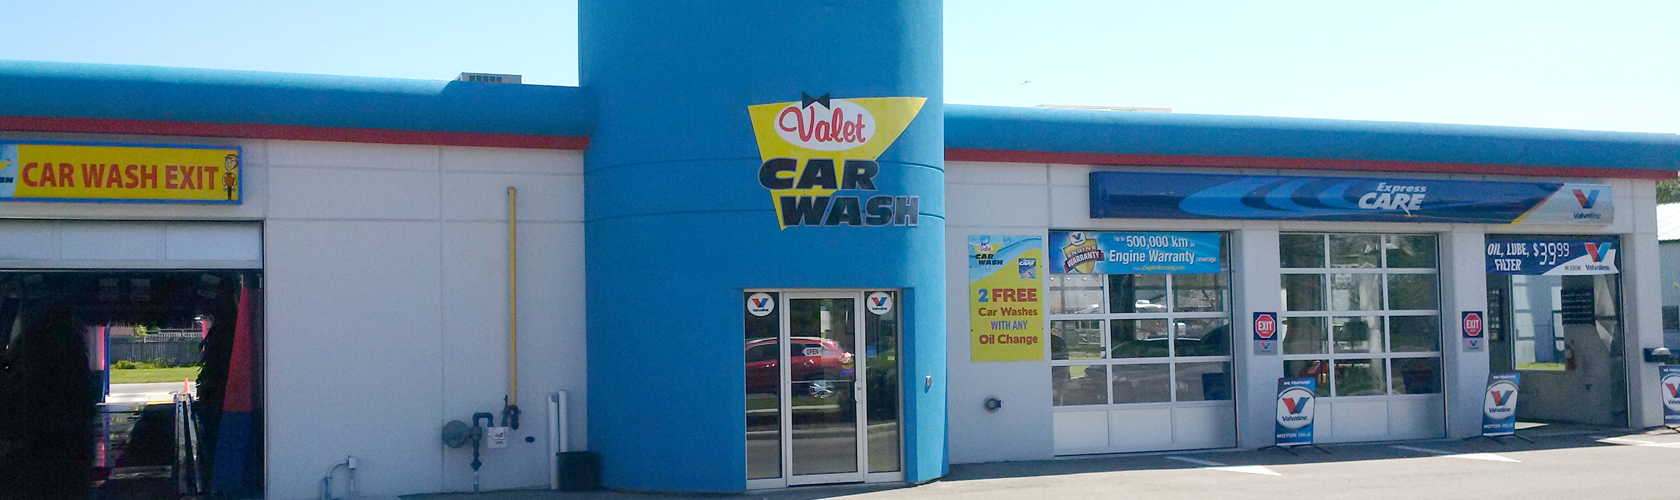 Valet car wash cambridge on solutioingenieria Gallery